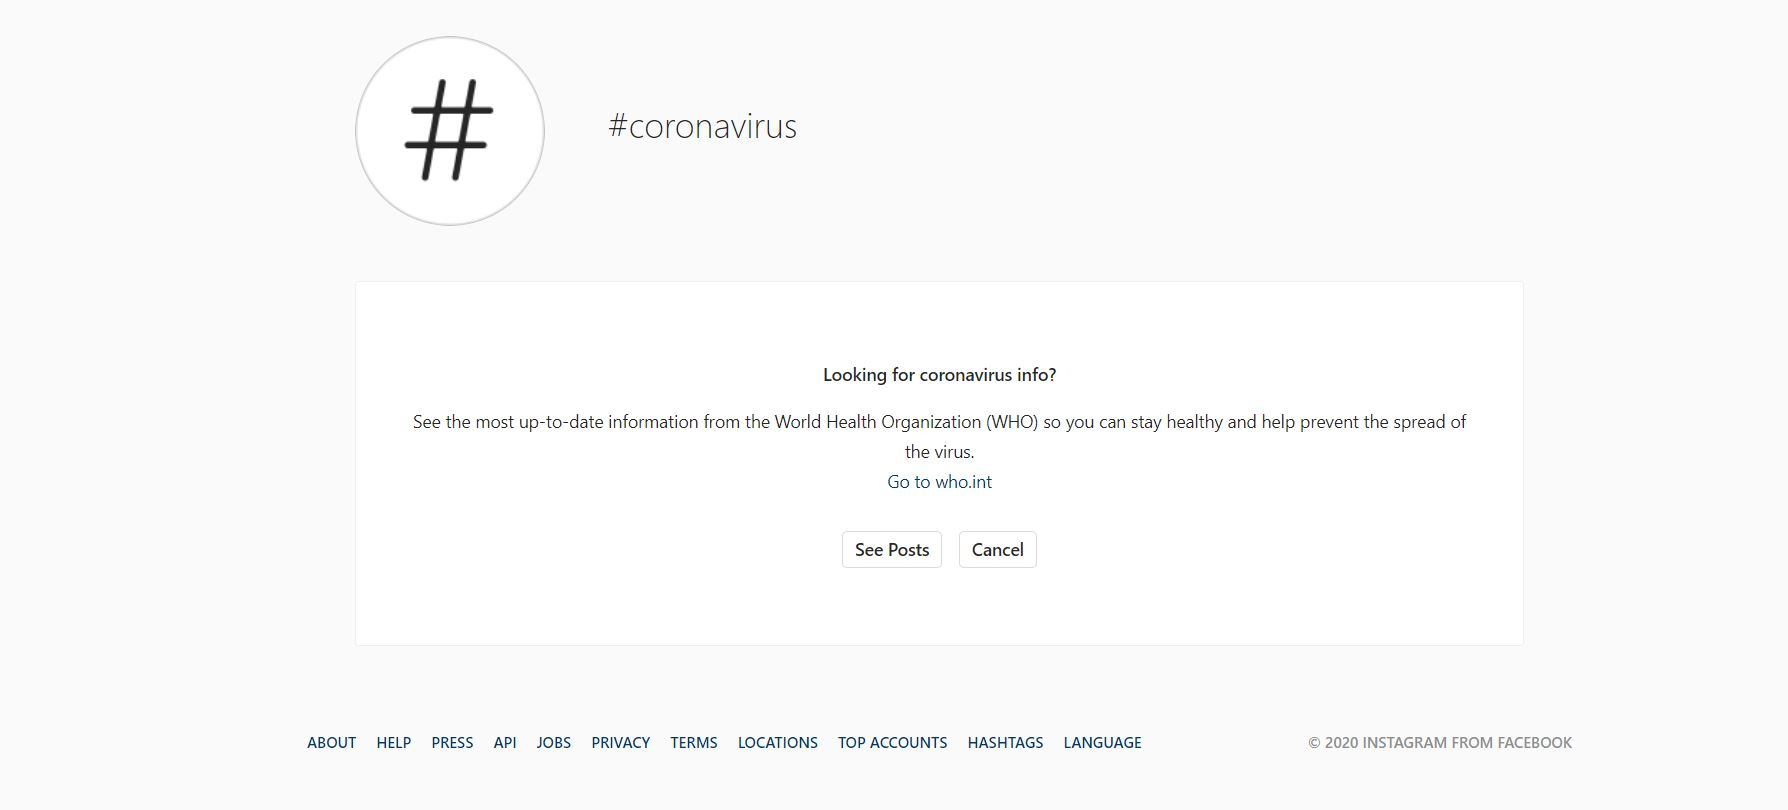 Kylie Jenner, Sports Men are Donating to Fight Coronavirus   Check out World Updates